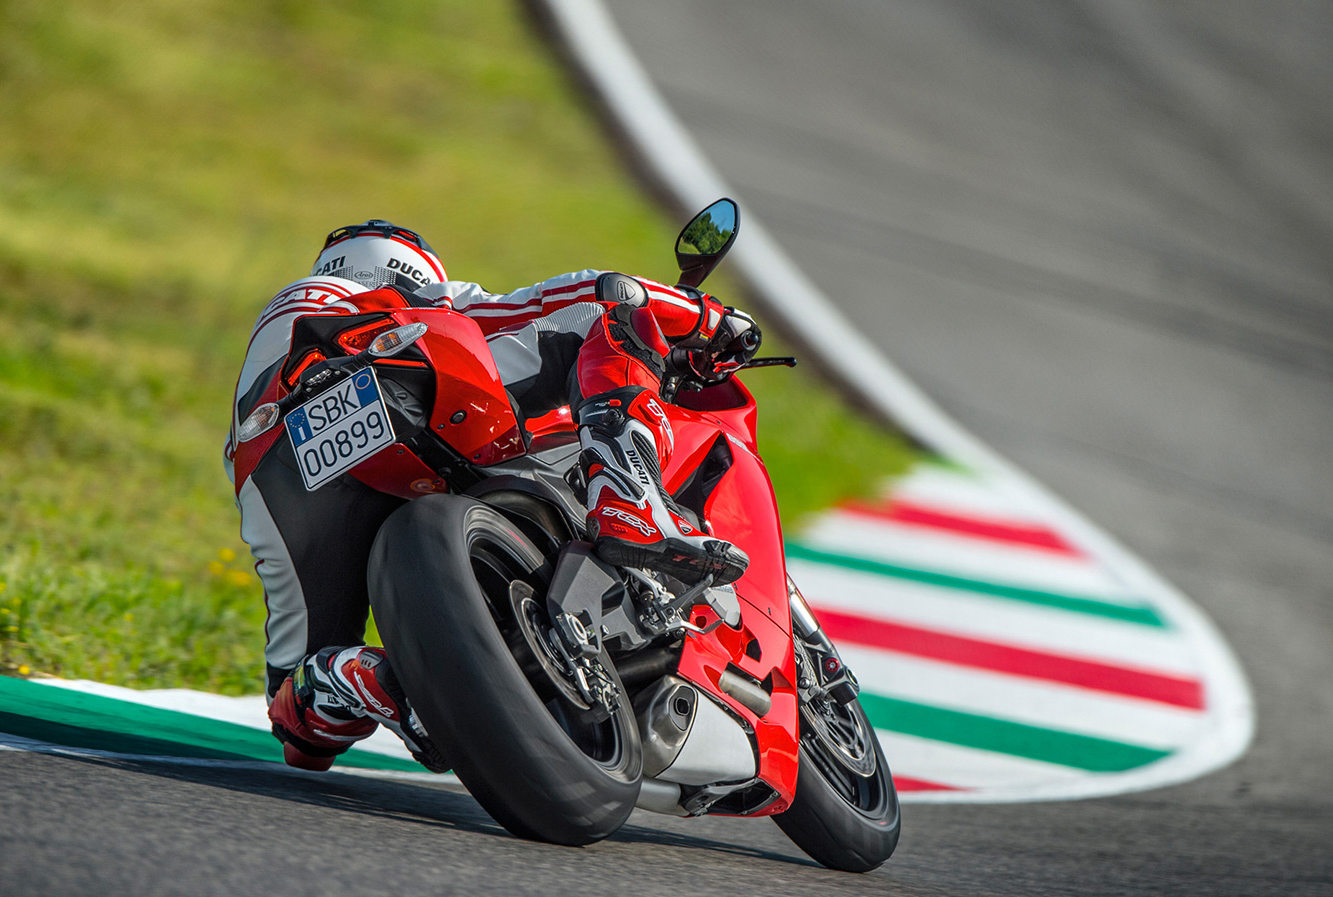 Ducati Unveils 2014 899 Panigale « MotorcycleDaily.com – Motorcycle News, Editorials, Product Reviews and Bike Reviews